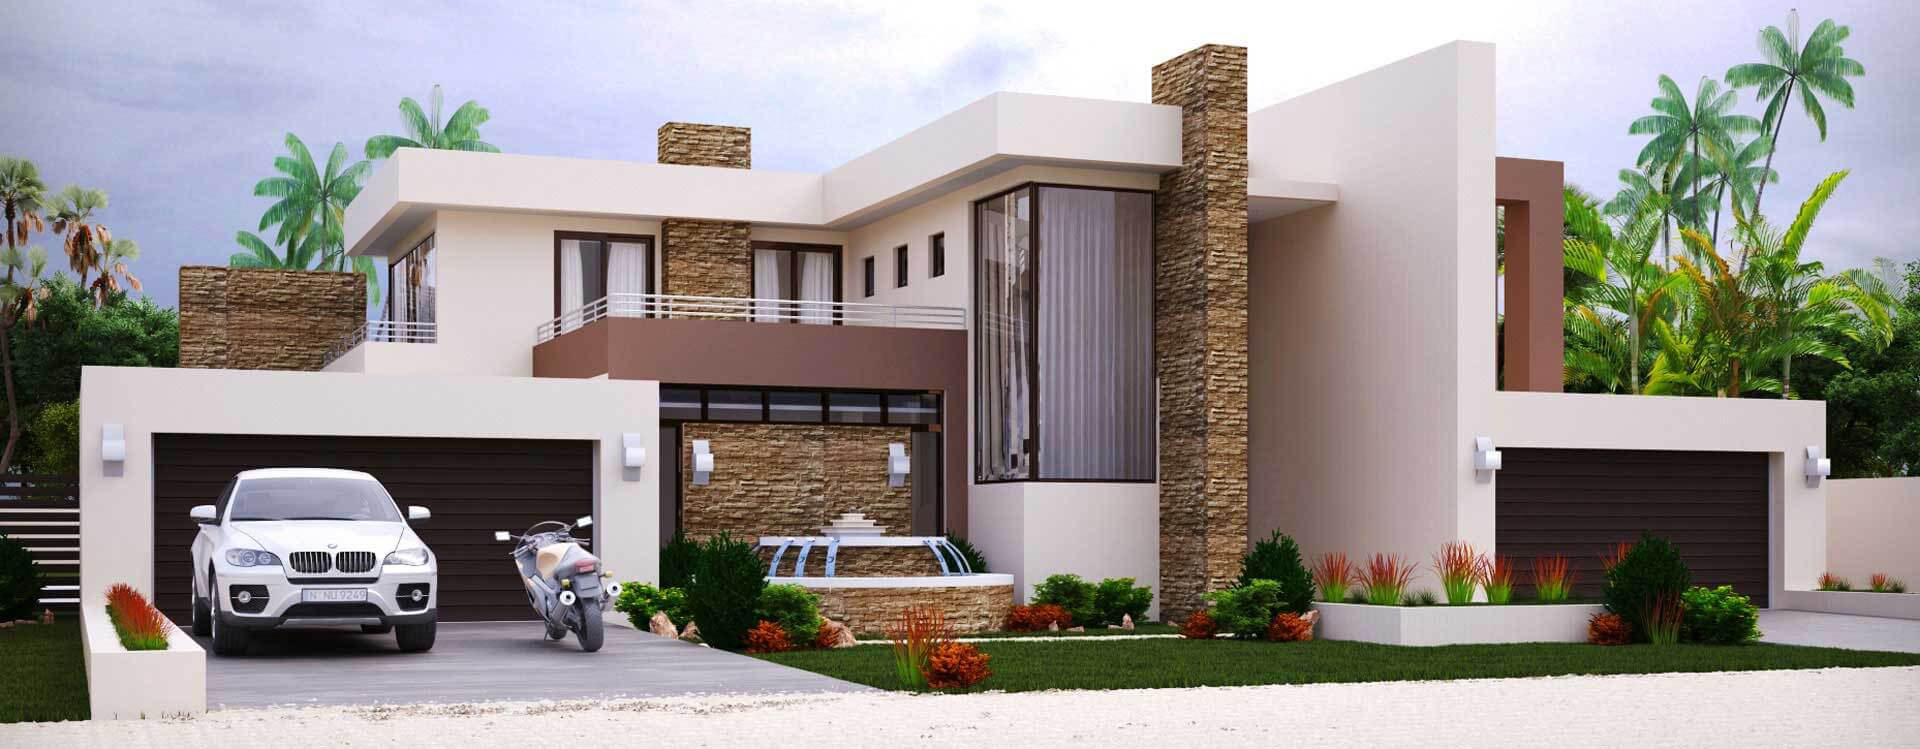 4 Bedroom House Plan For Sale Modern House Designs Nethouseplans